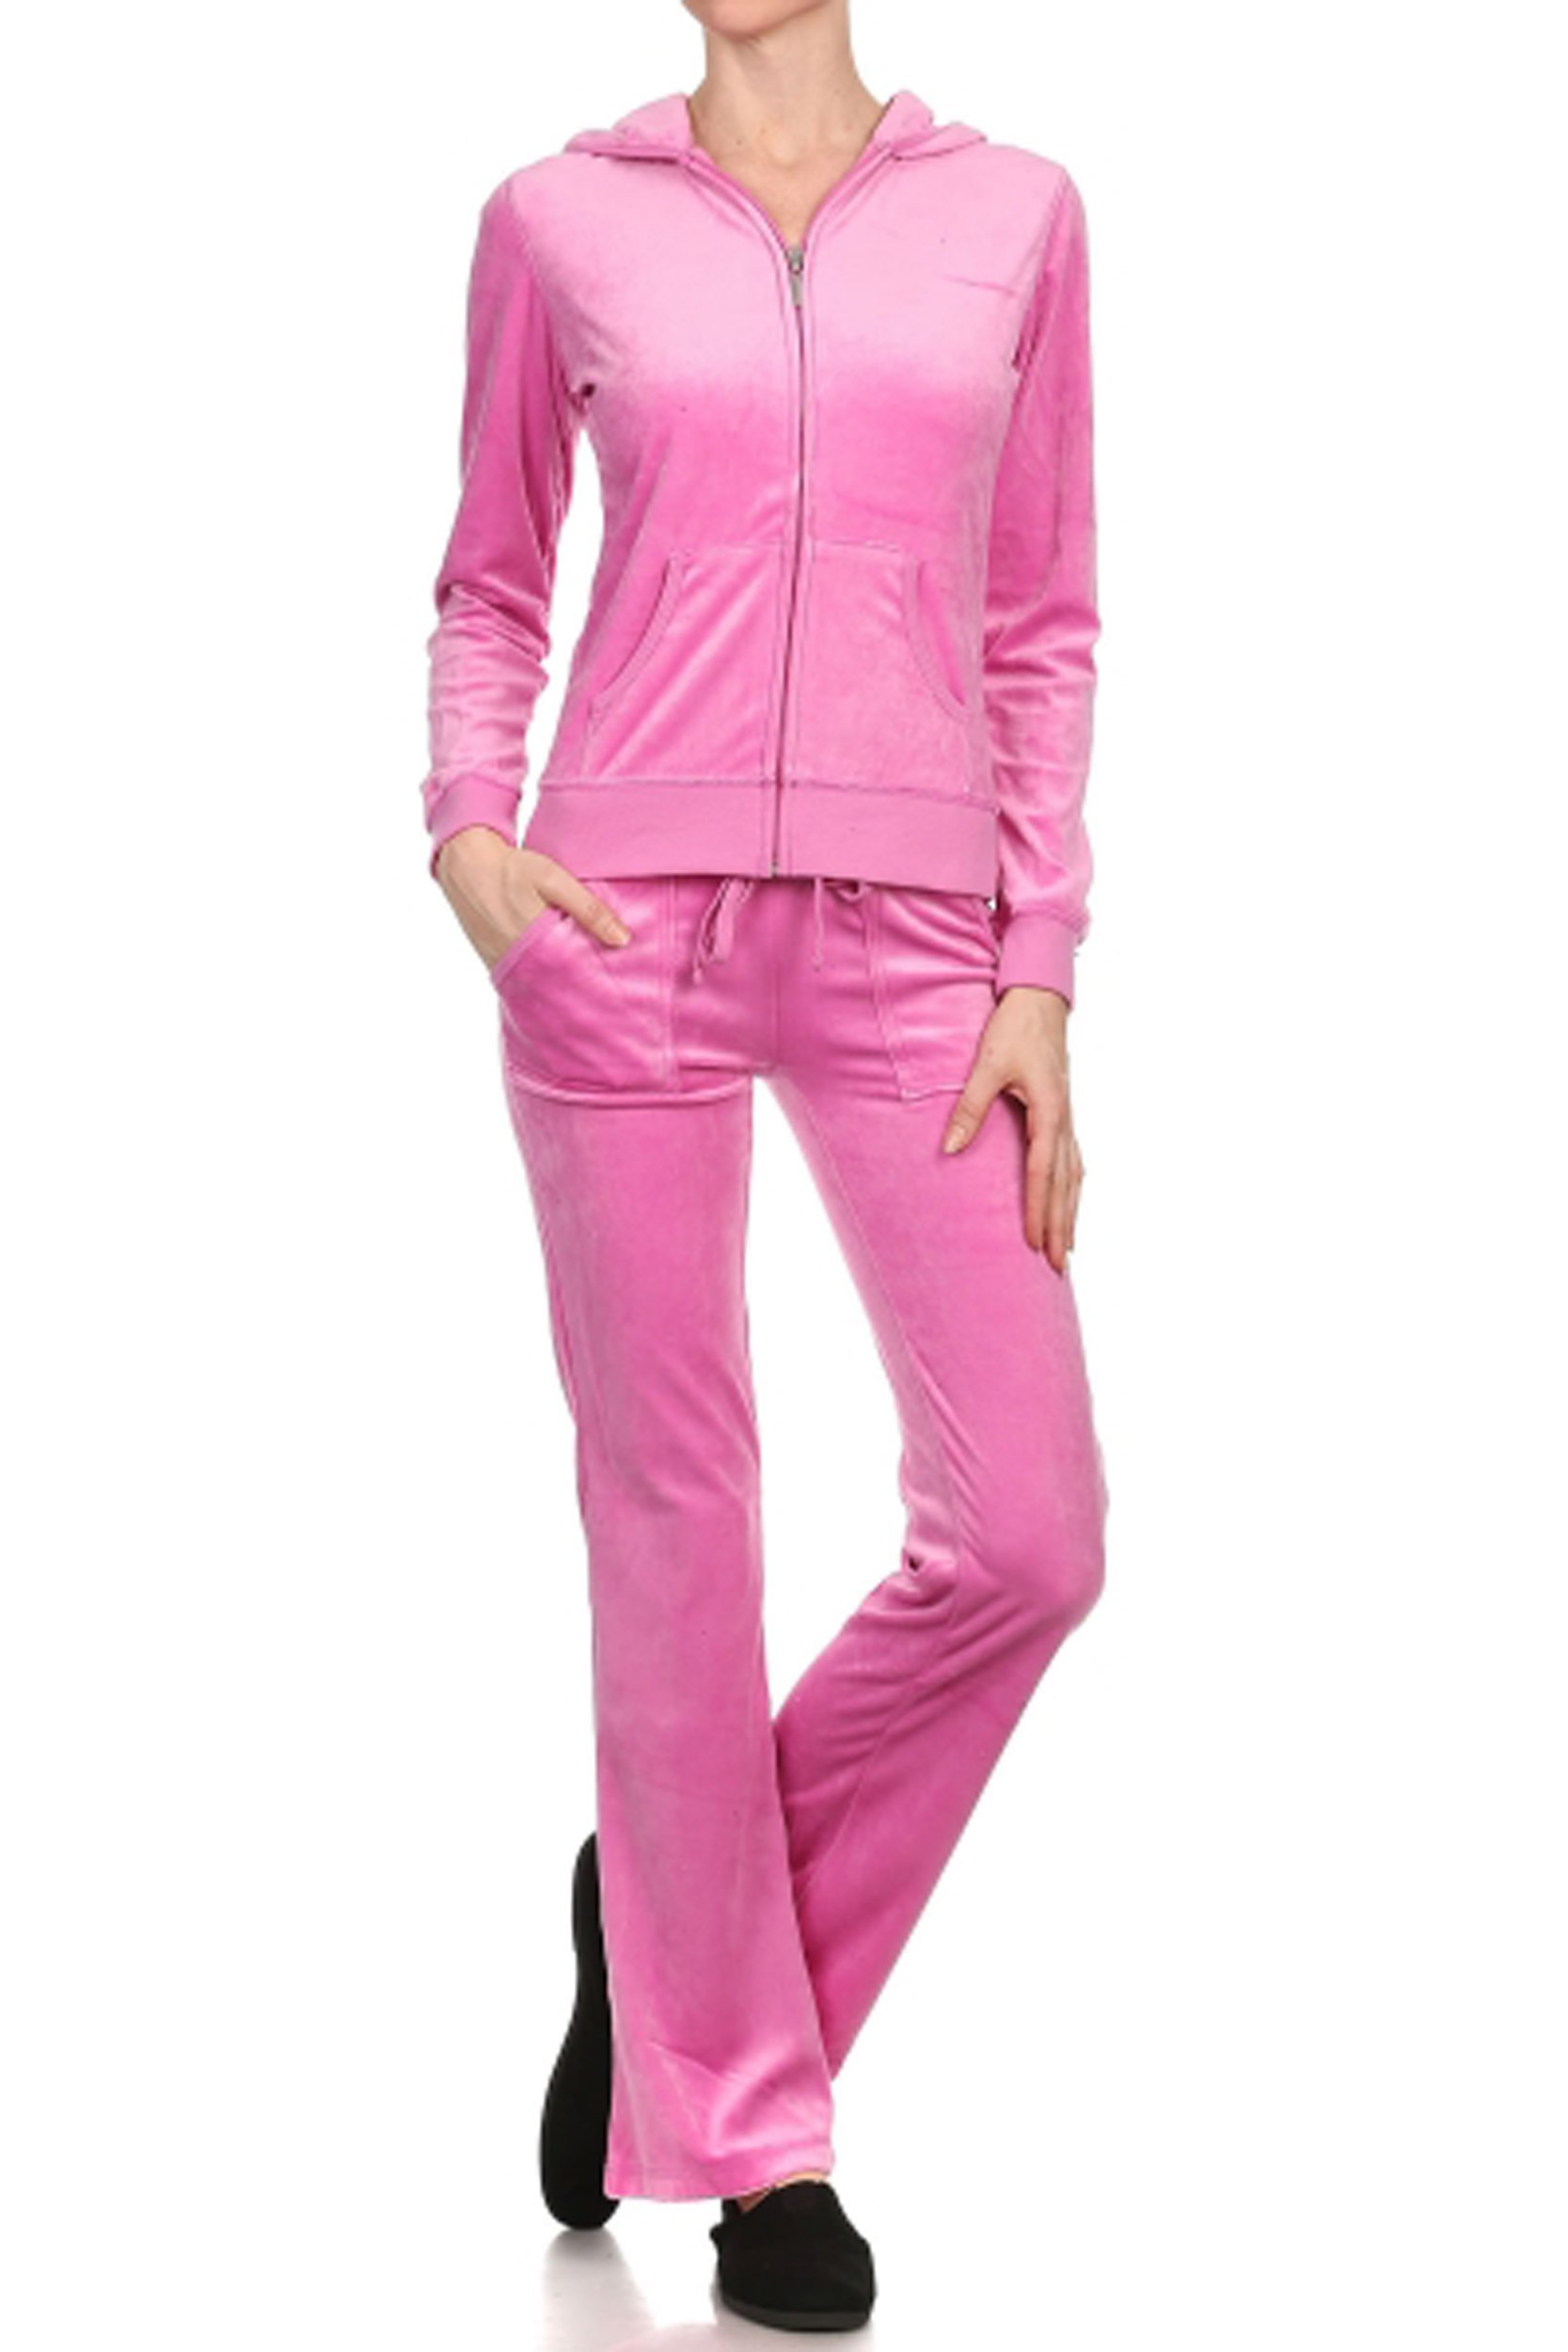 ViiViiKay Women's Soft Velour Tracksuit Athletic Zip Up Hoodie & Sweat Pants Set 001_PINK M